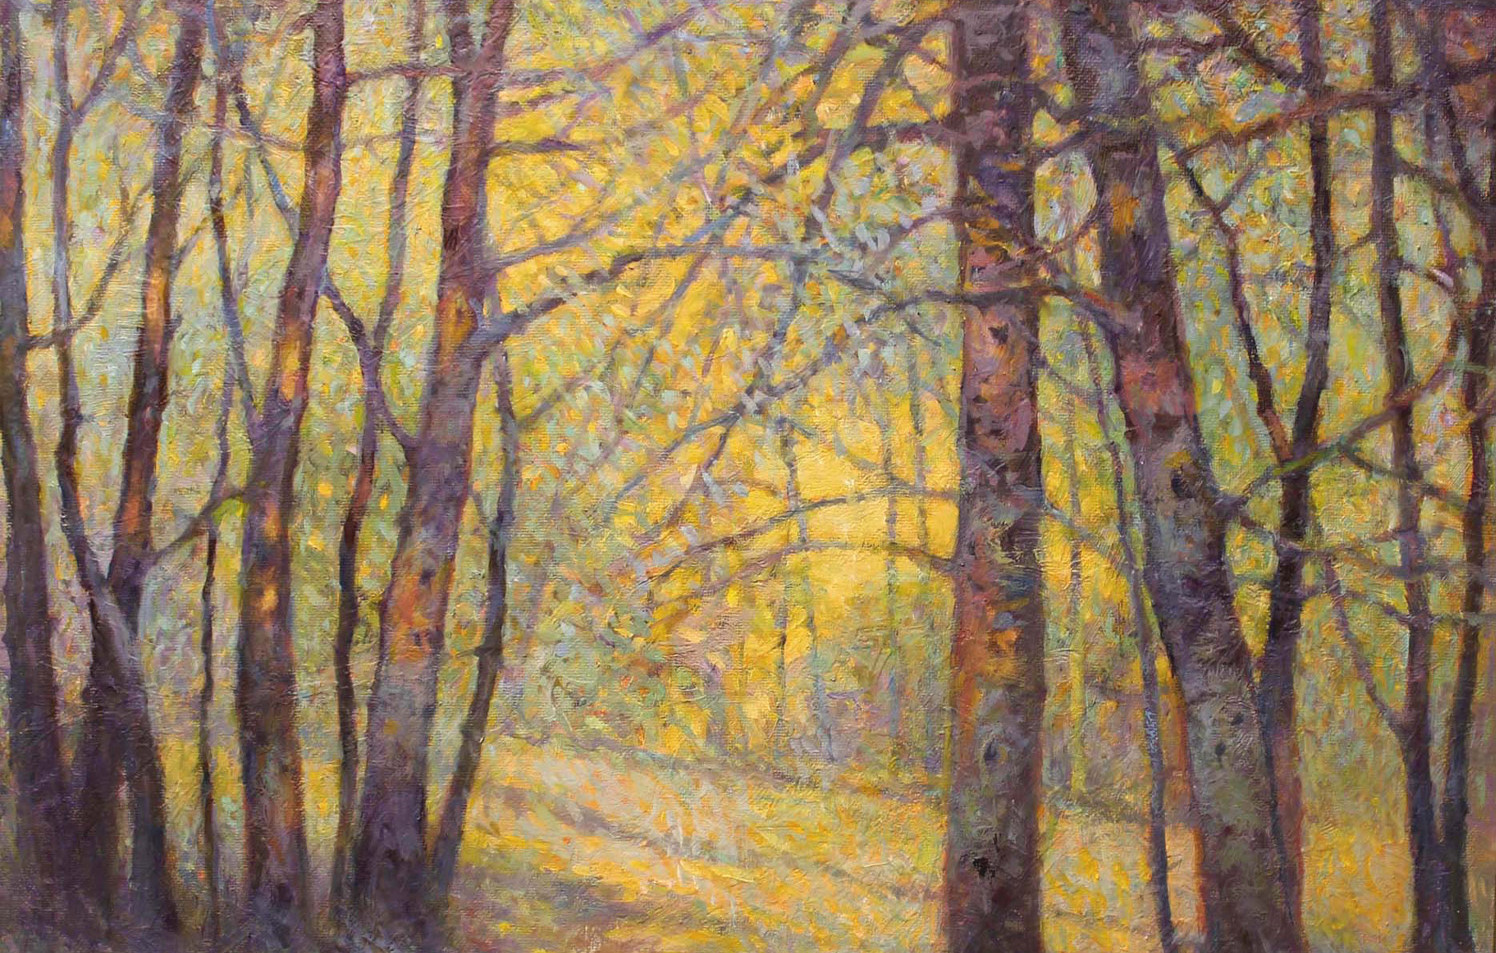 Woods Revisited 16 x 20 oil